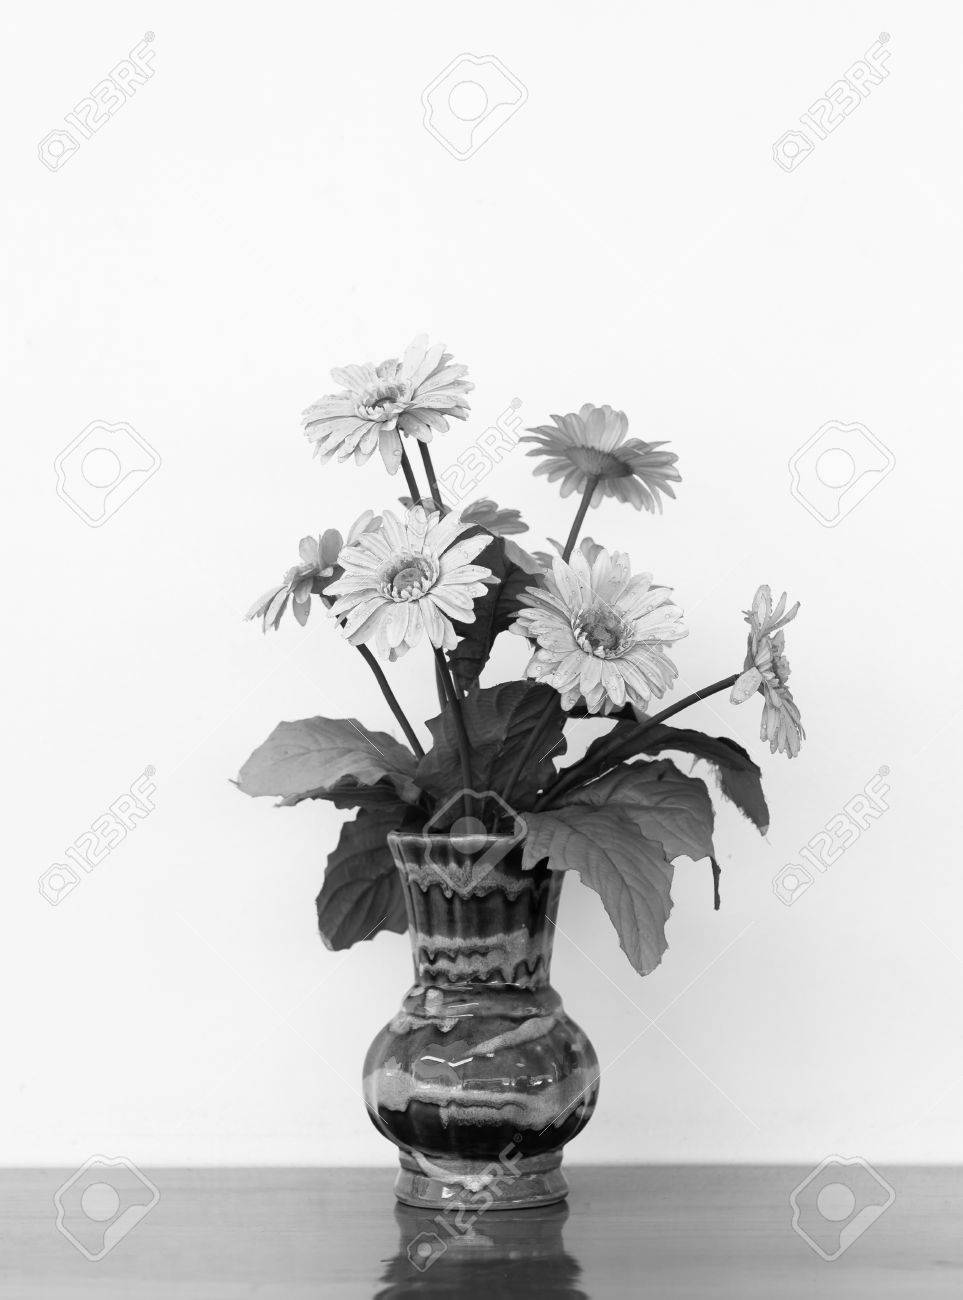 Flower Vases Black And White Stock Photo Picture And Royalty Free